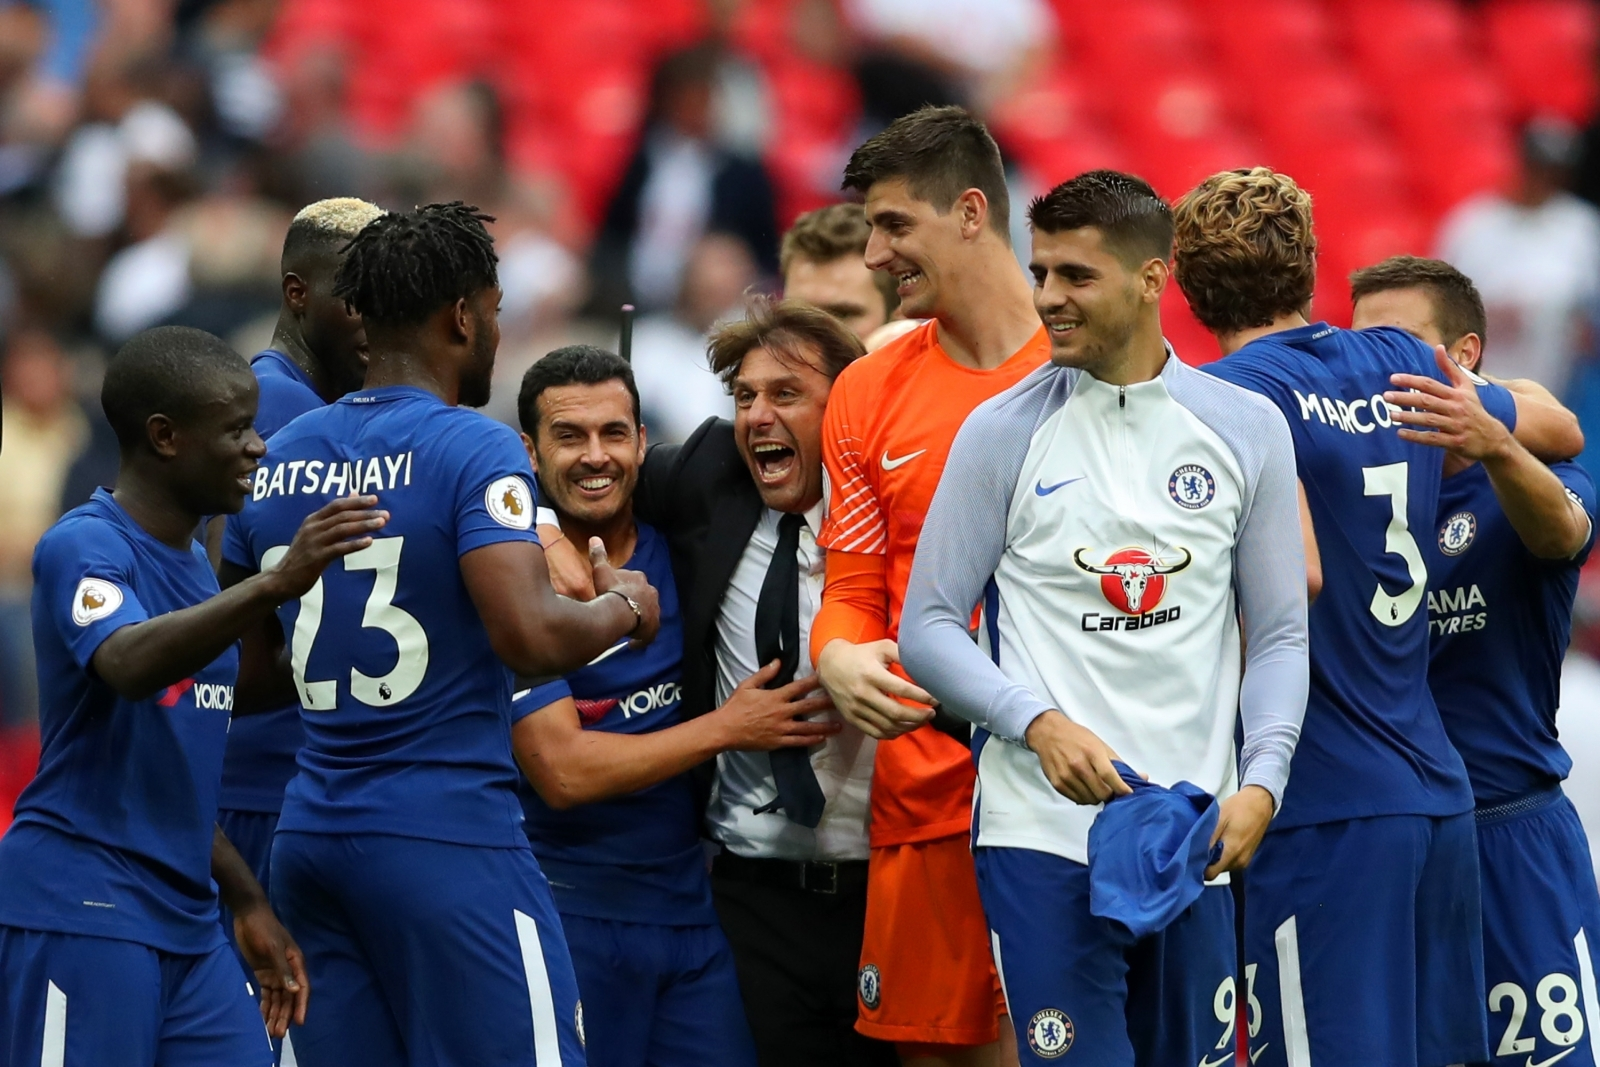 Chelsea players celebrating